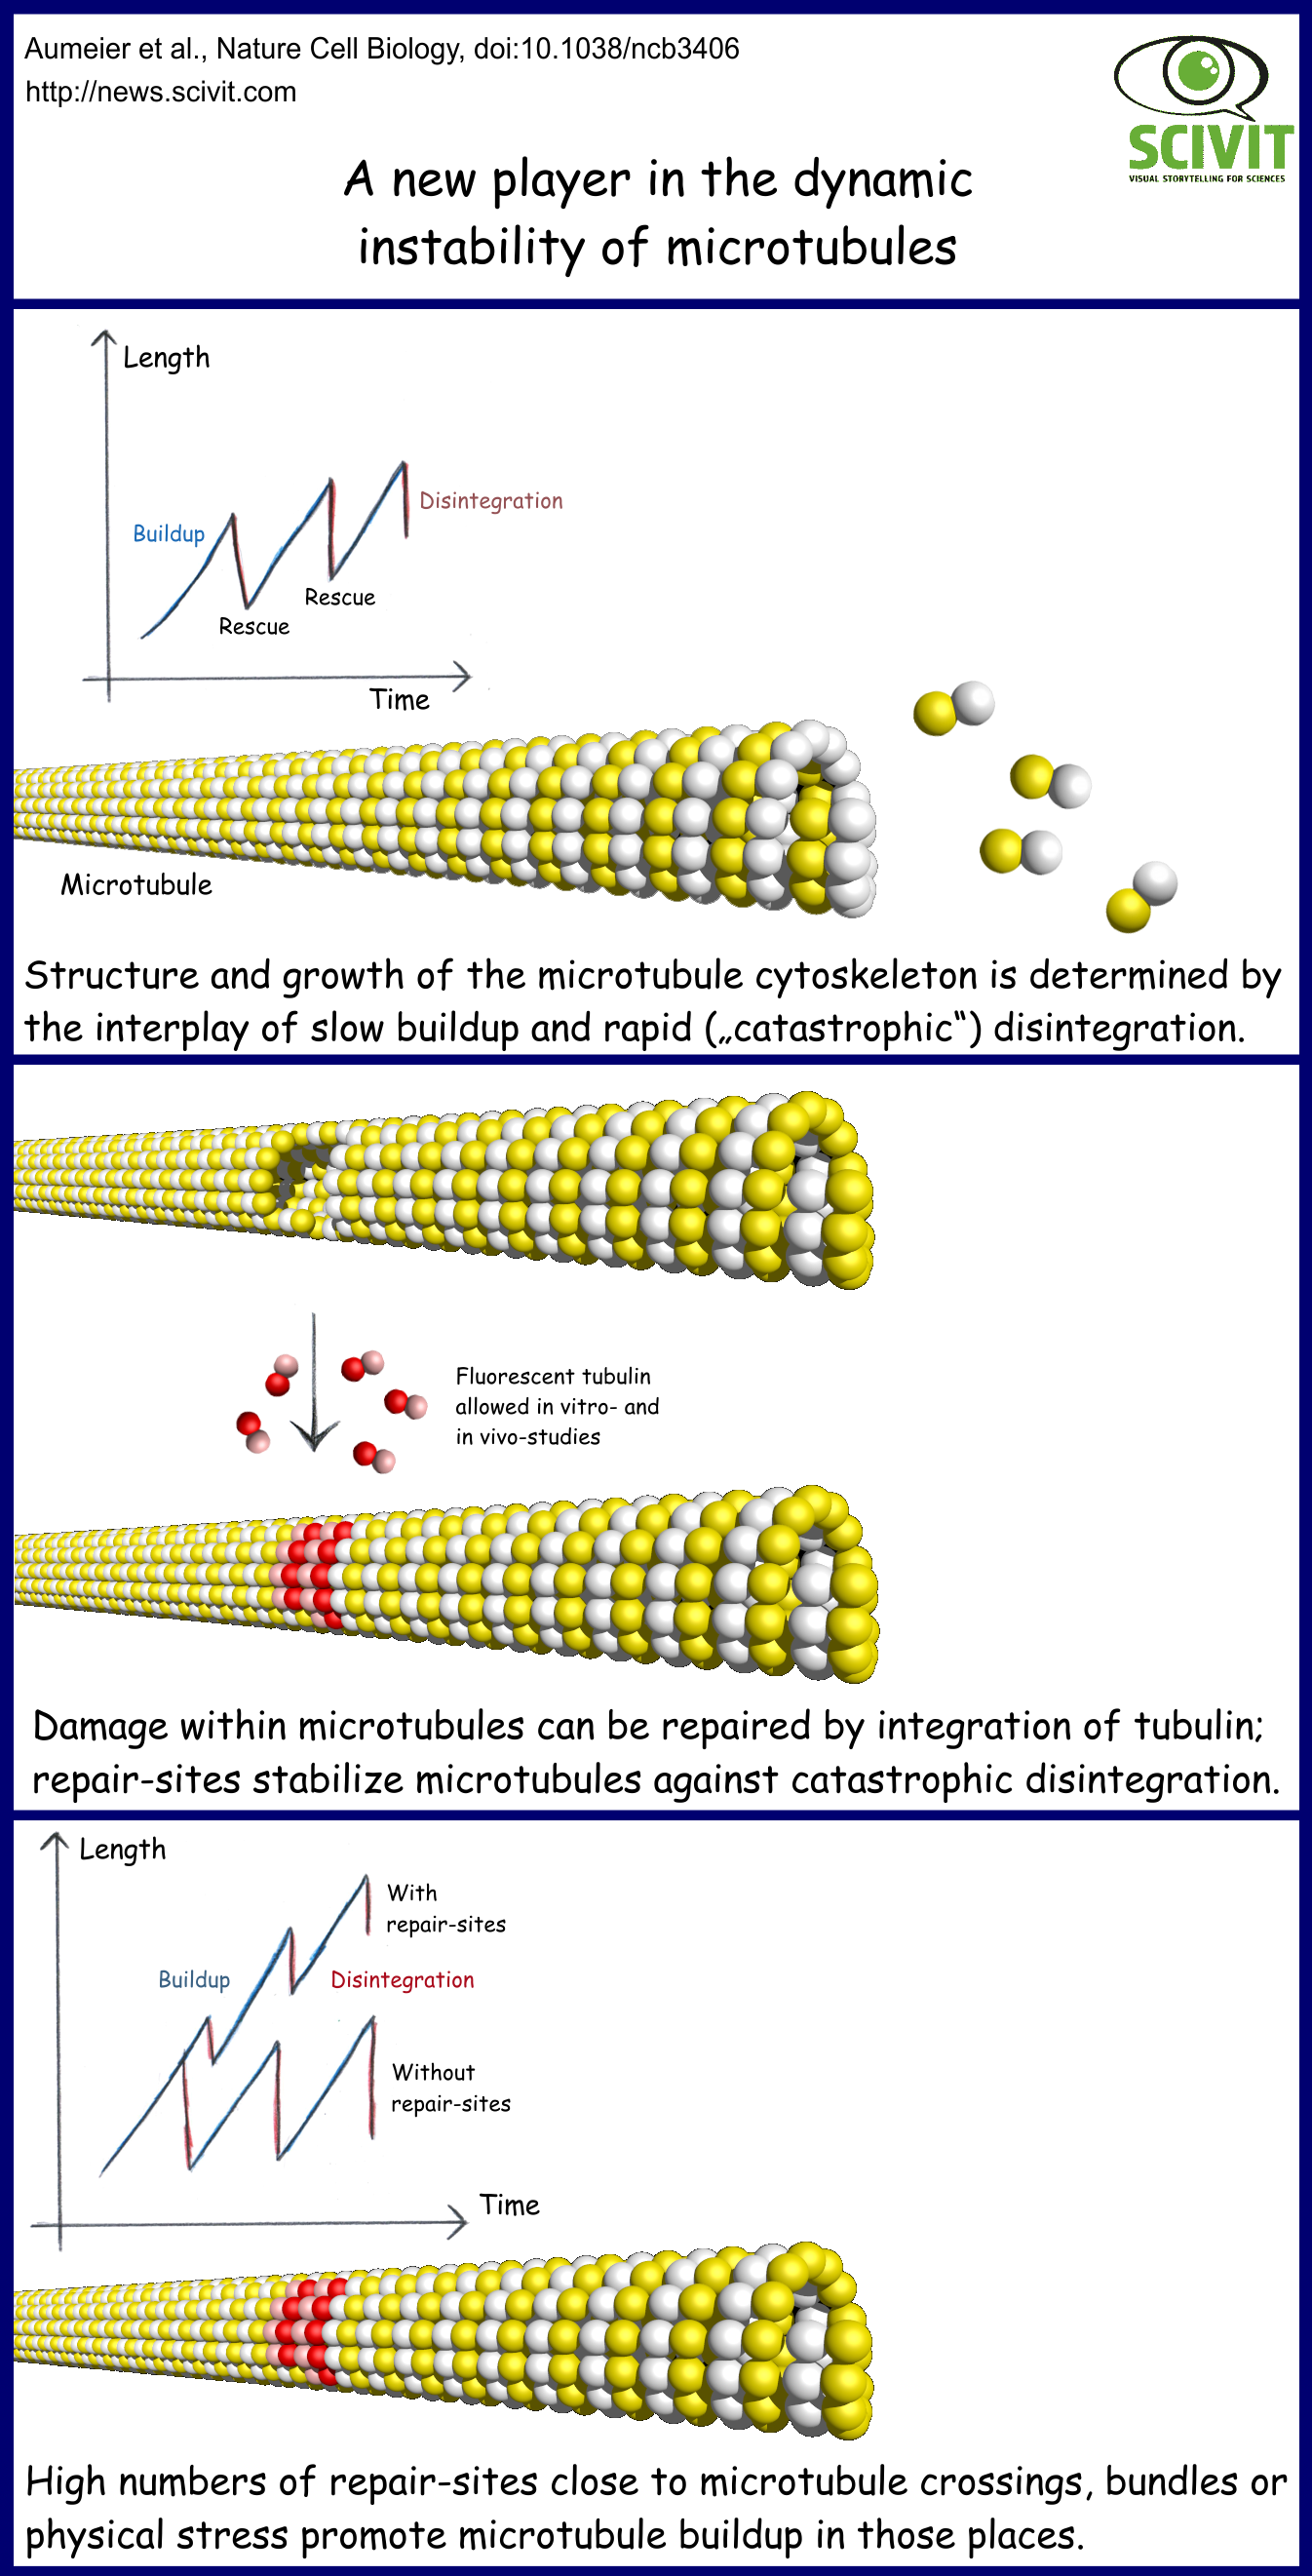 A new player in the dynamic instability of microtubules